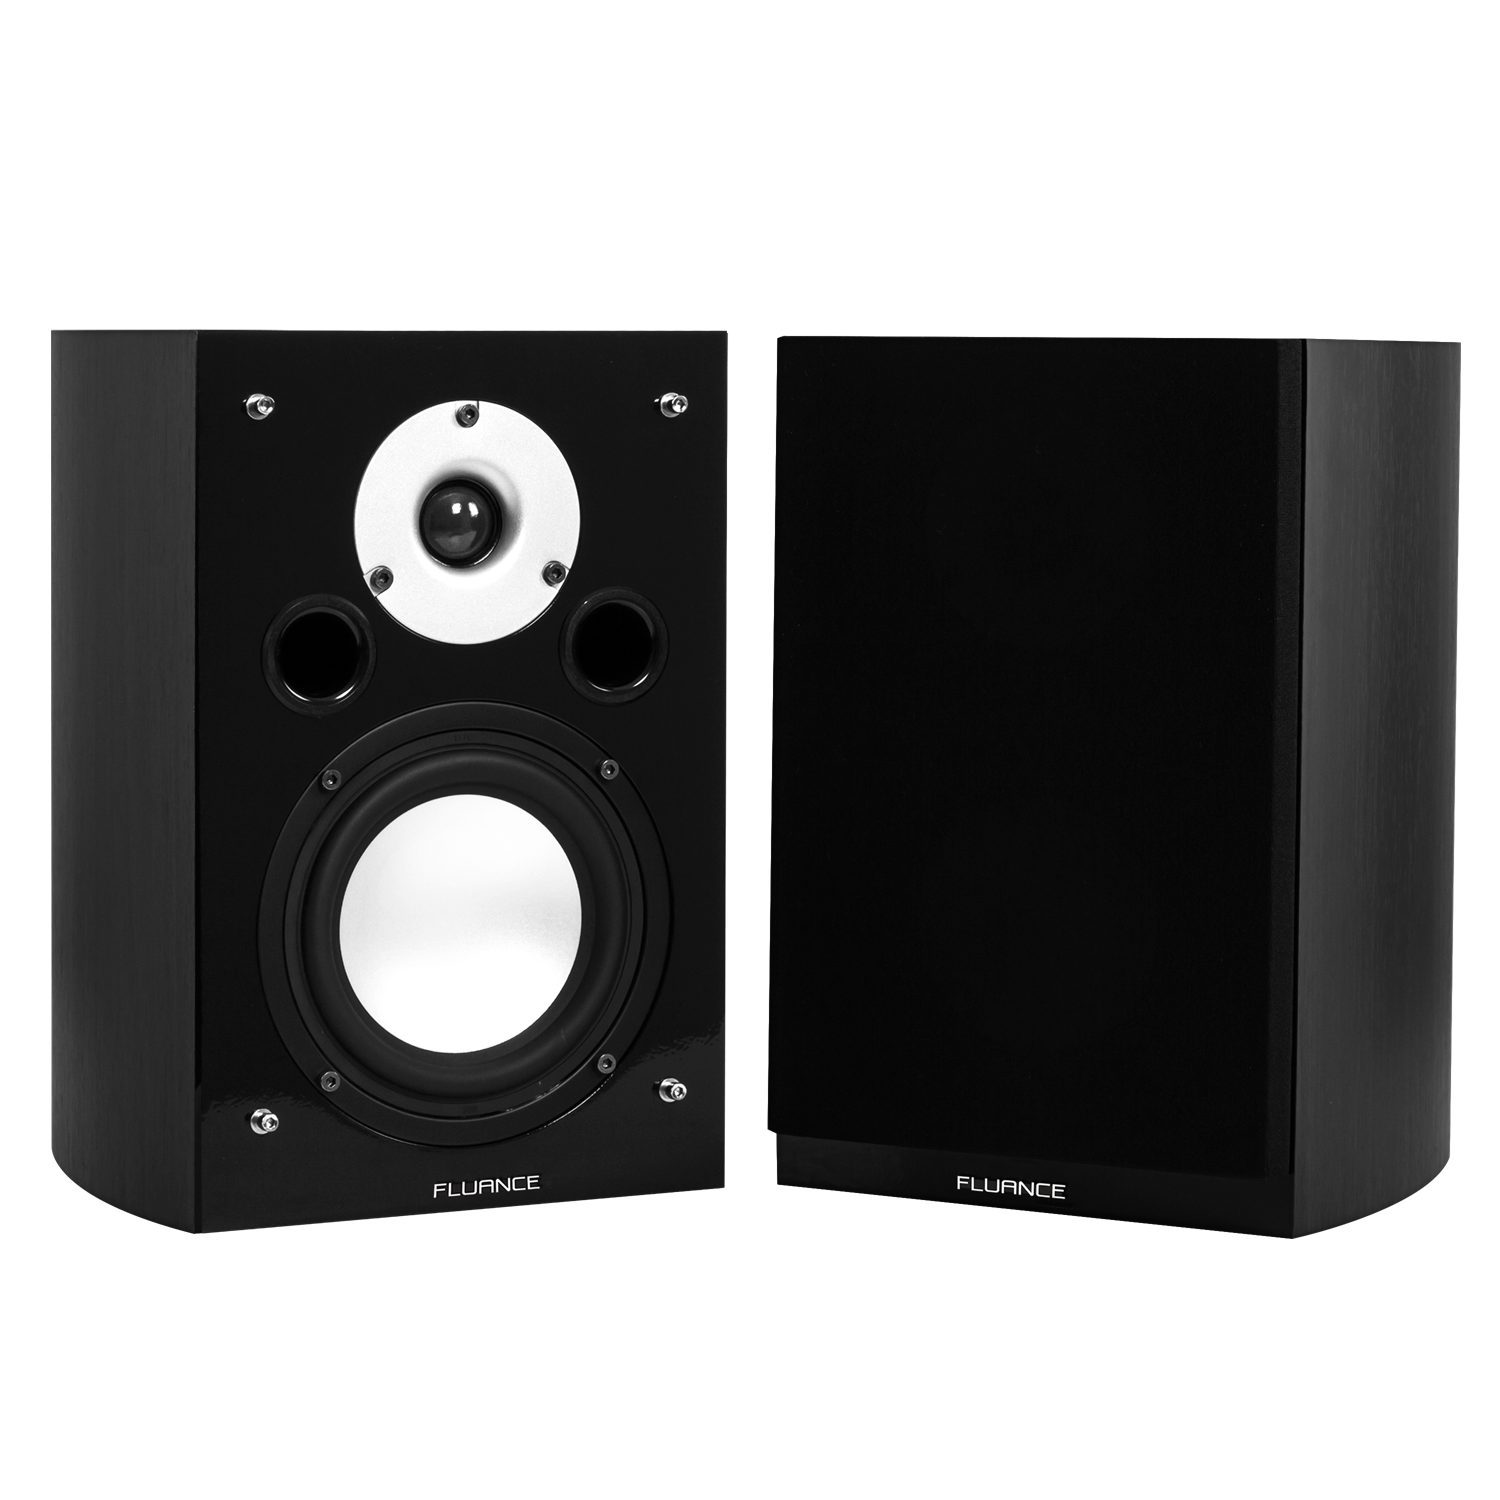 Reference Series High Performance Two-way Bookshelf Surround Sound Speakers